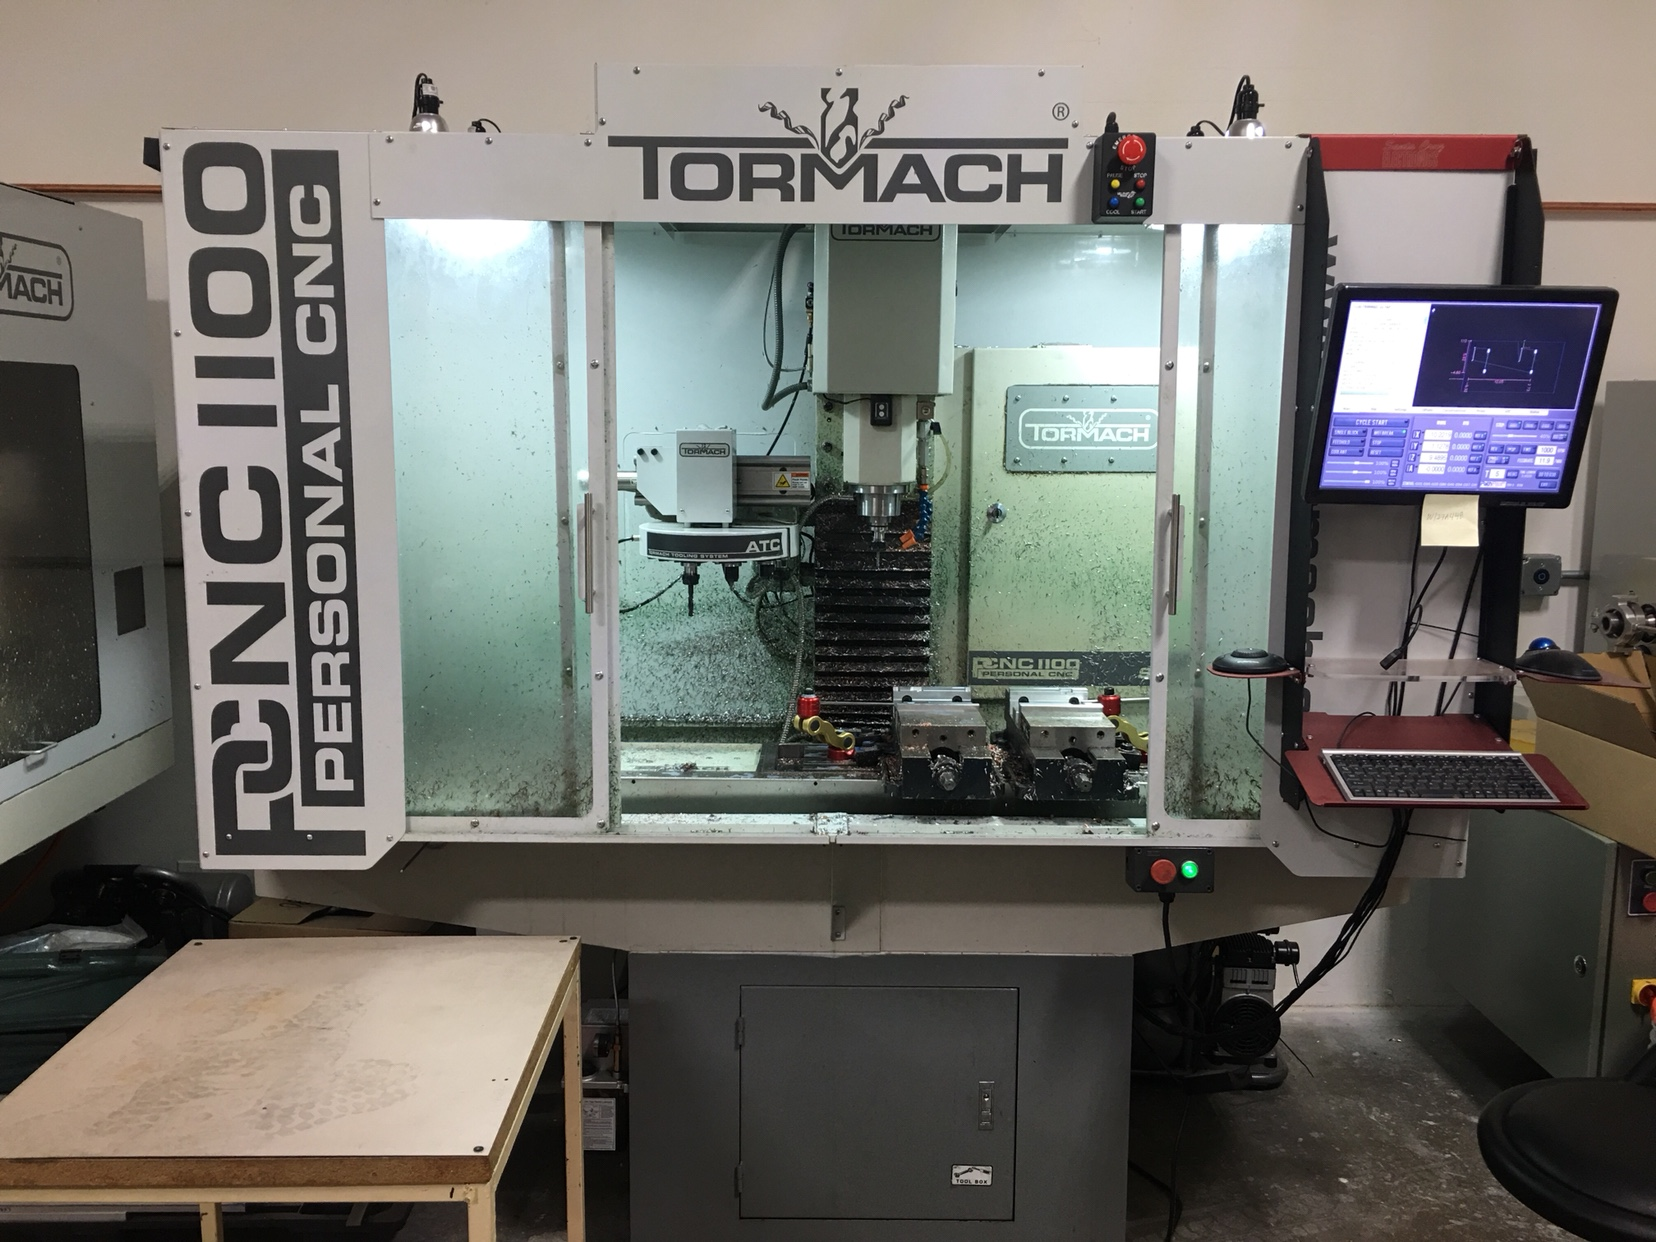 Tormach Personal CNC Mill > Selling PCNC 1100 Series 3